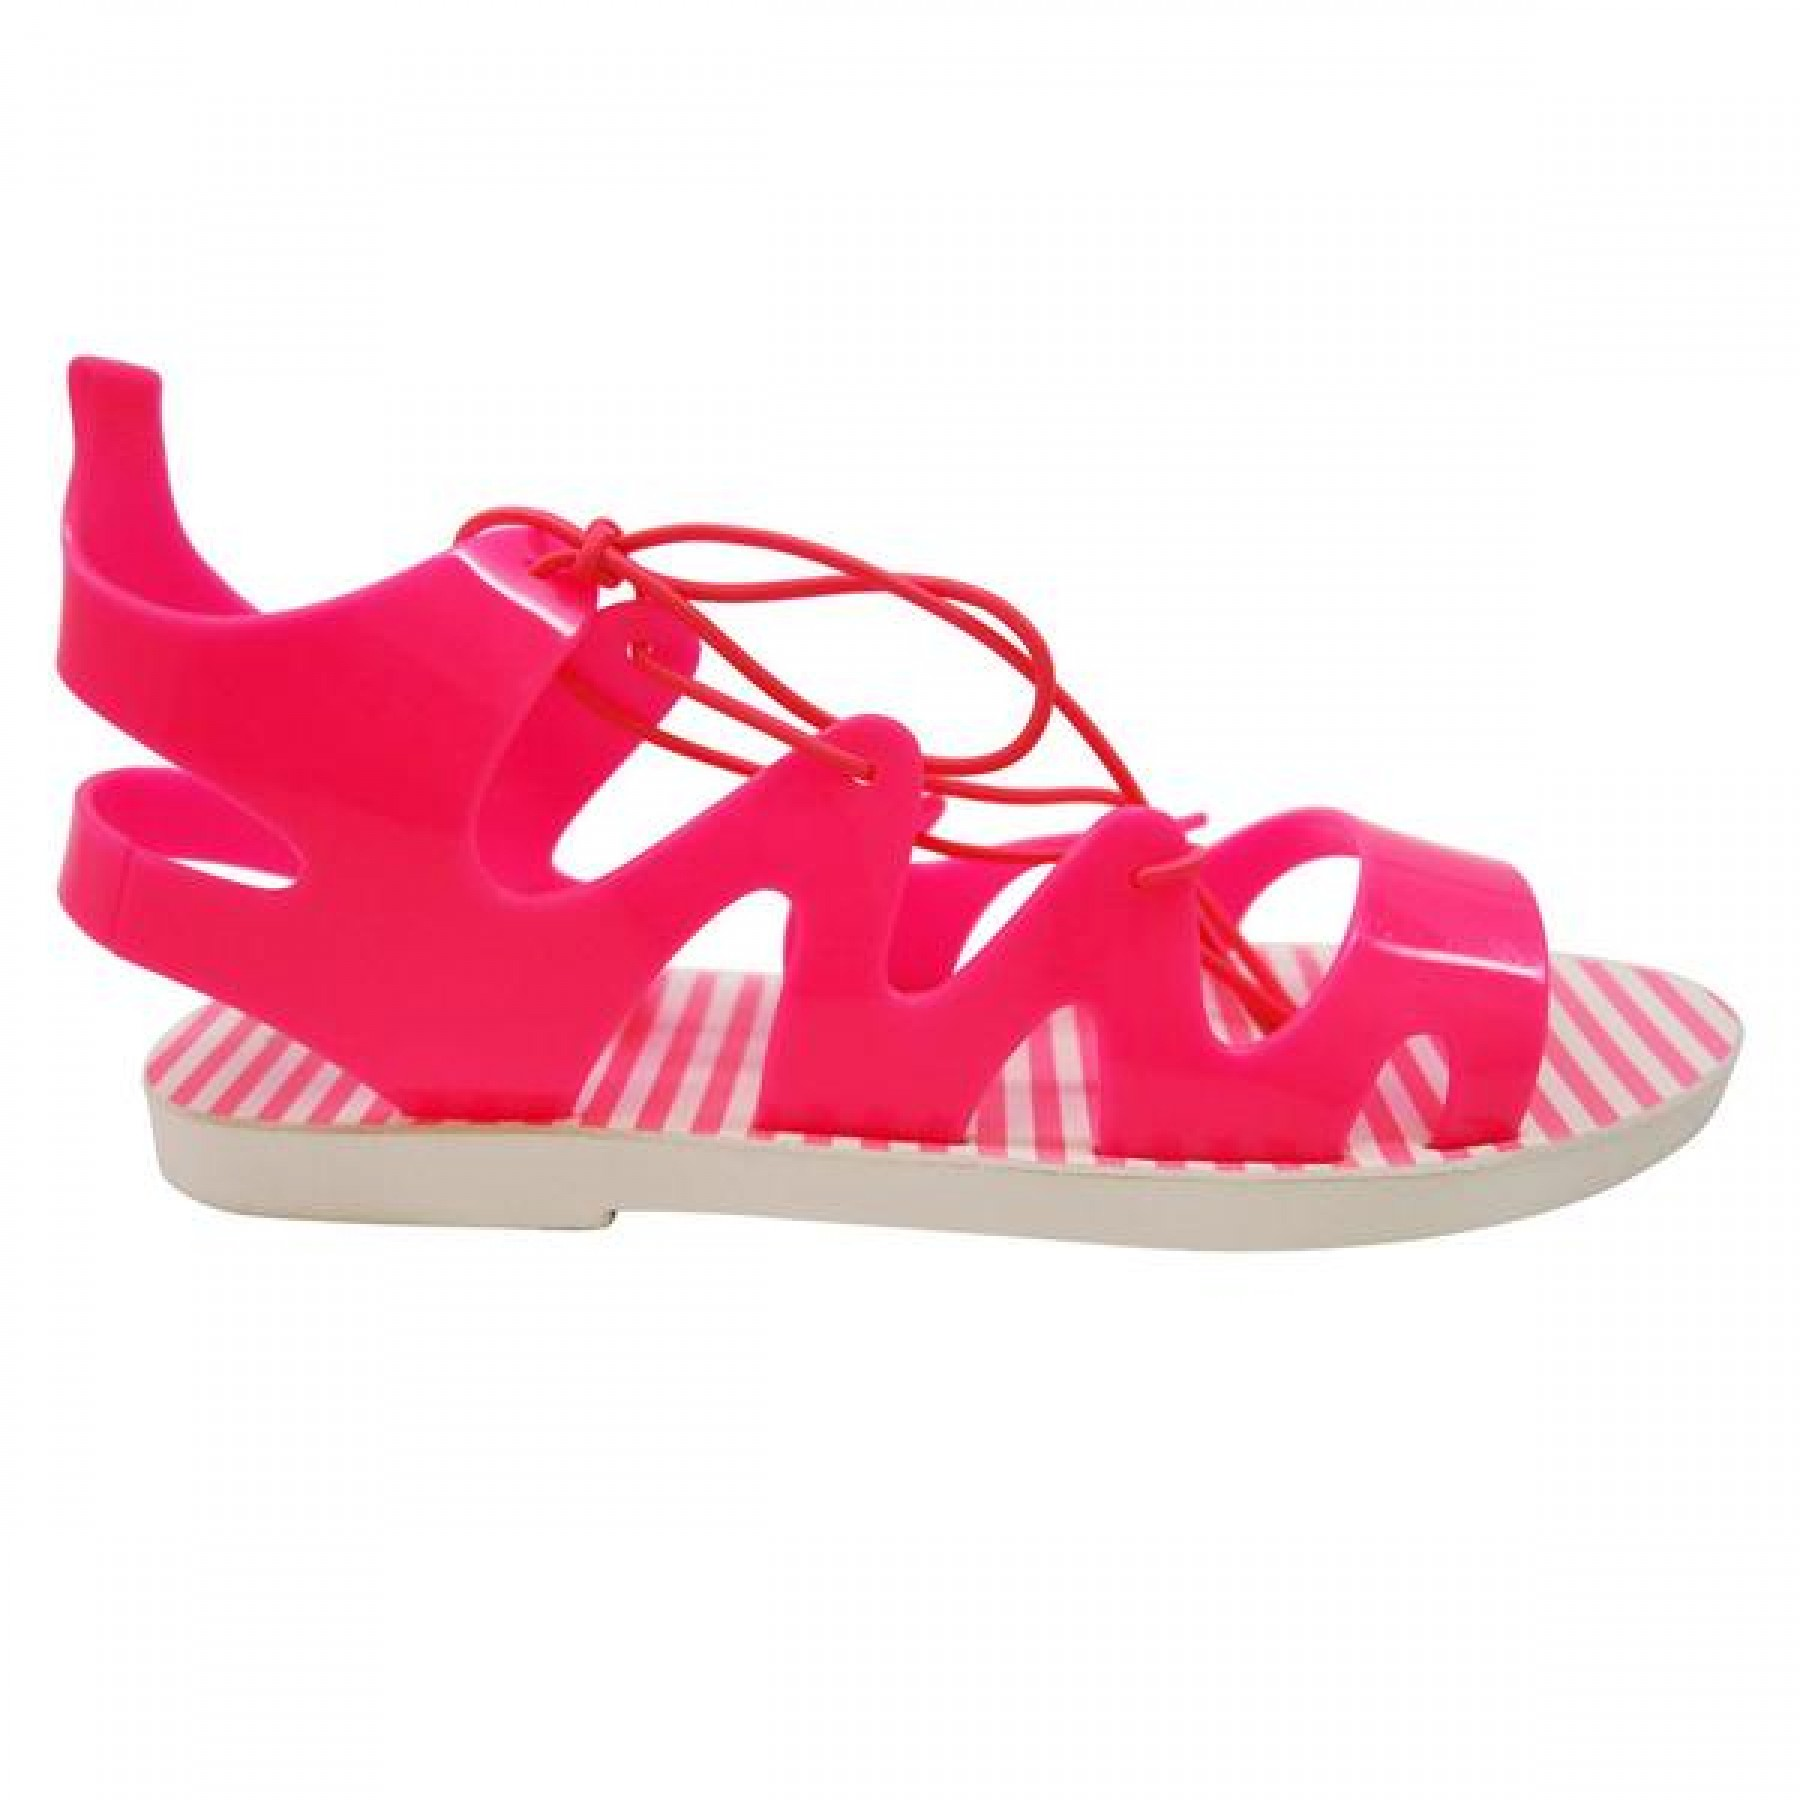 Women's Fuchsia Manmade Nihoa Jelly Sandal with Lace-up Gladiator Vamp